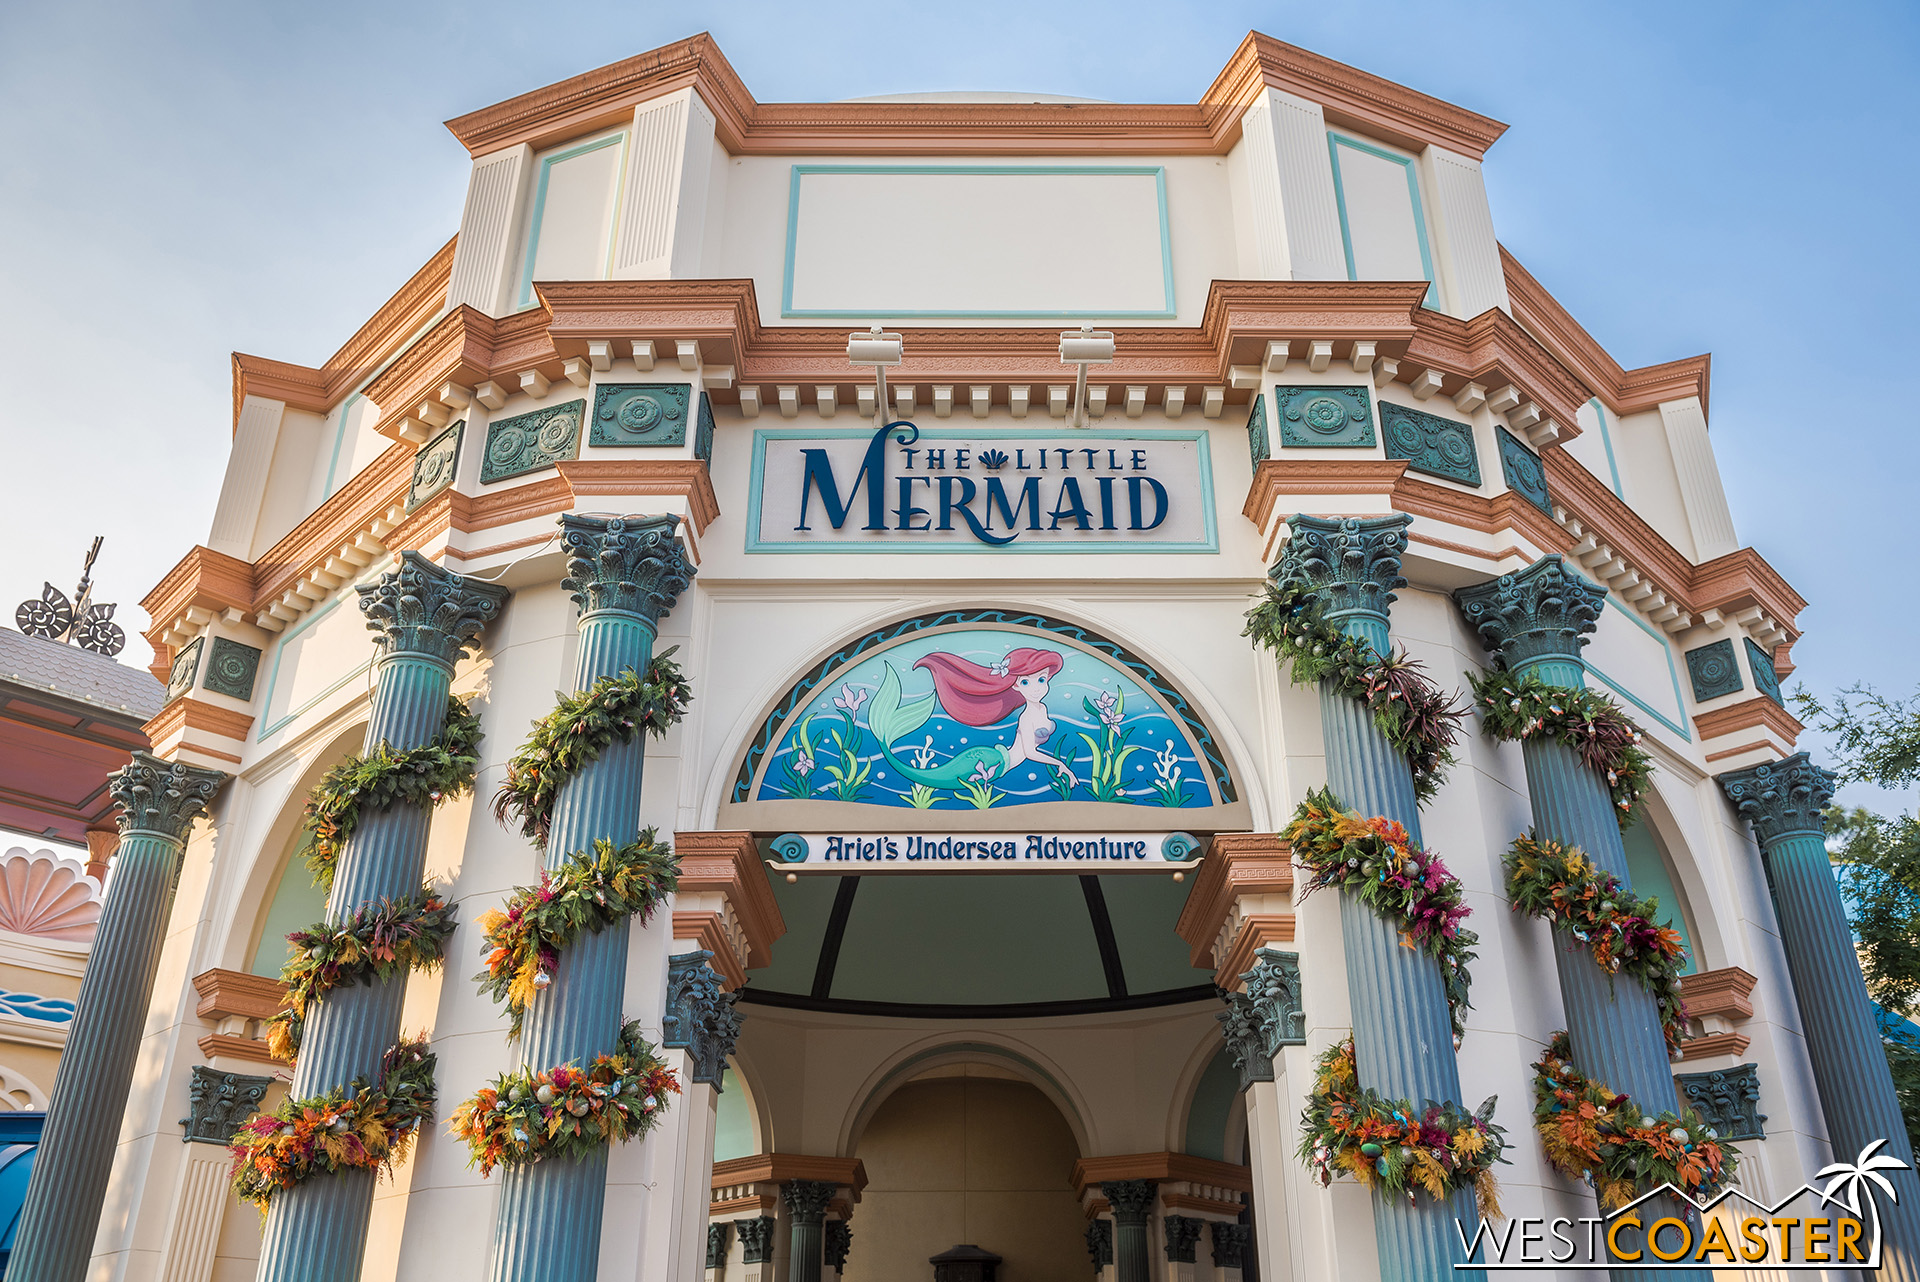 The garland around the Little Mermaid building looks a bit like kelp, doesn't it?